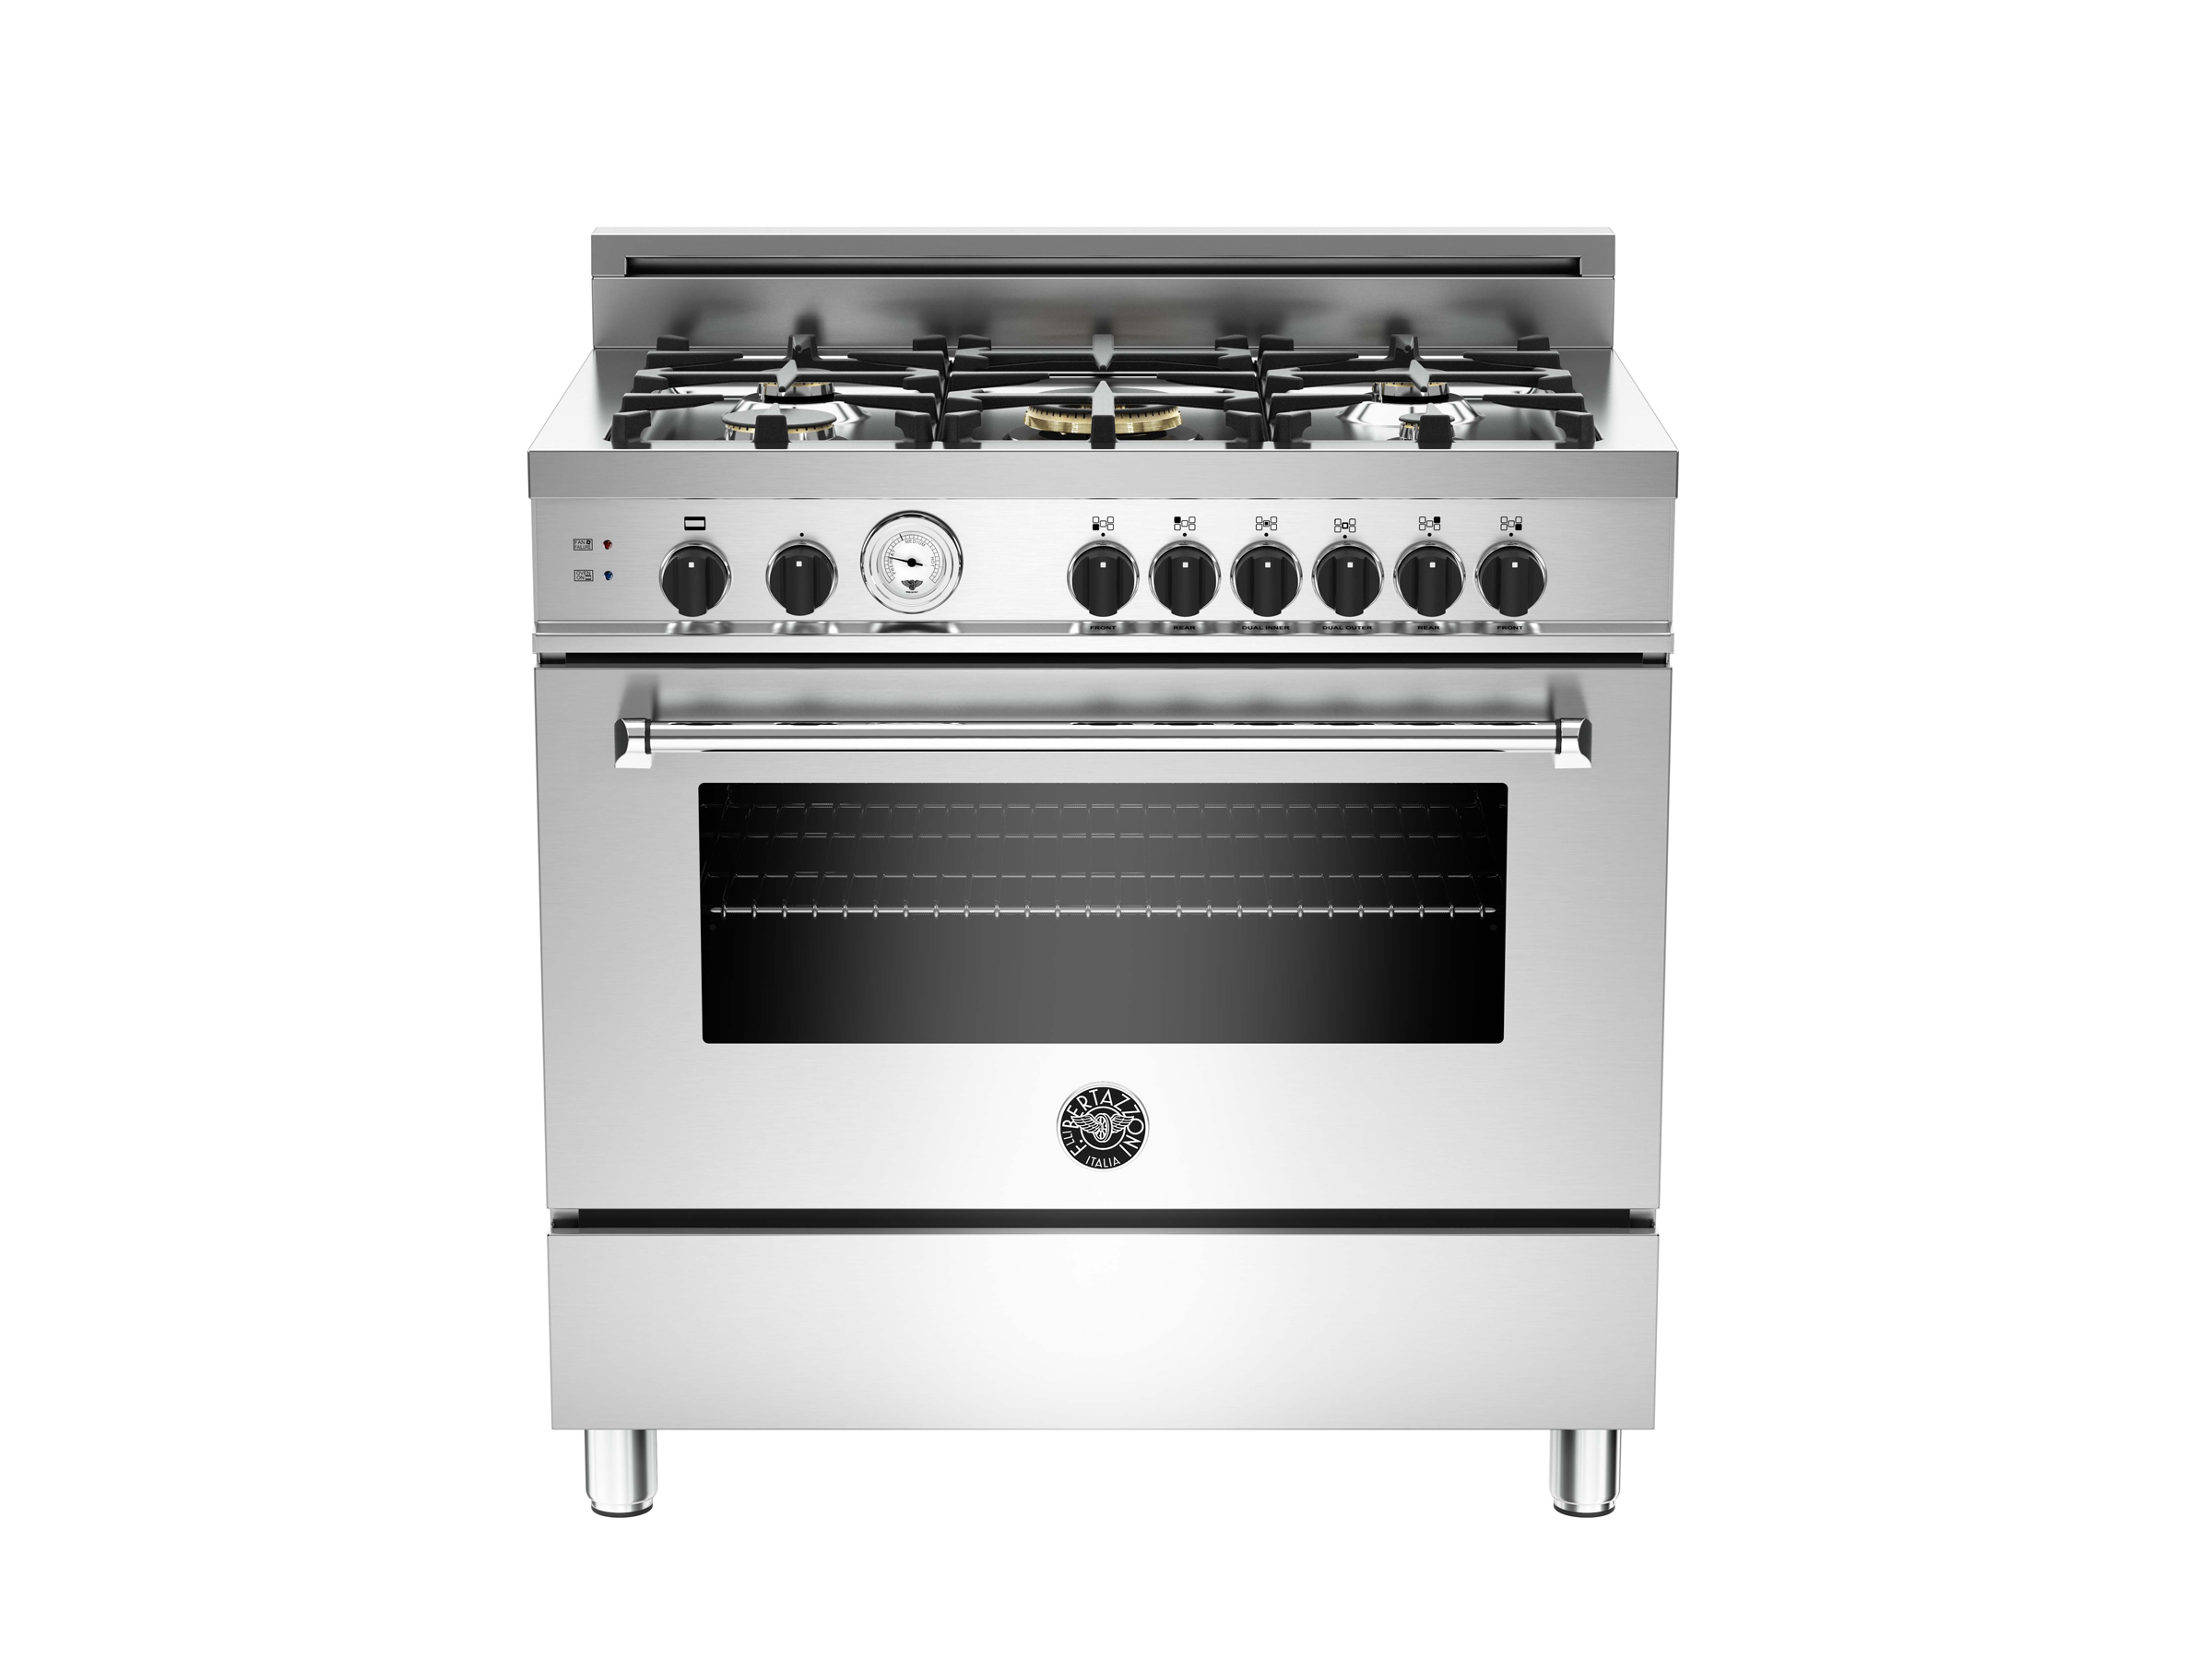 Gas Oven And Grill Part - 34: 36 5-Burner, Gas Oven | Bertazzoni - Stainless